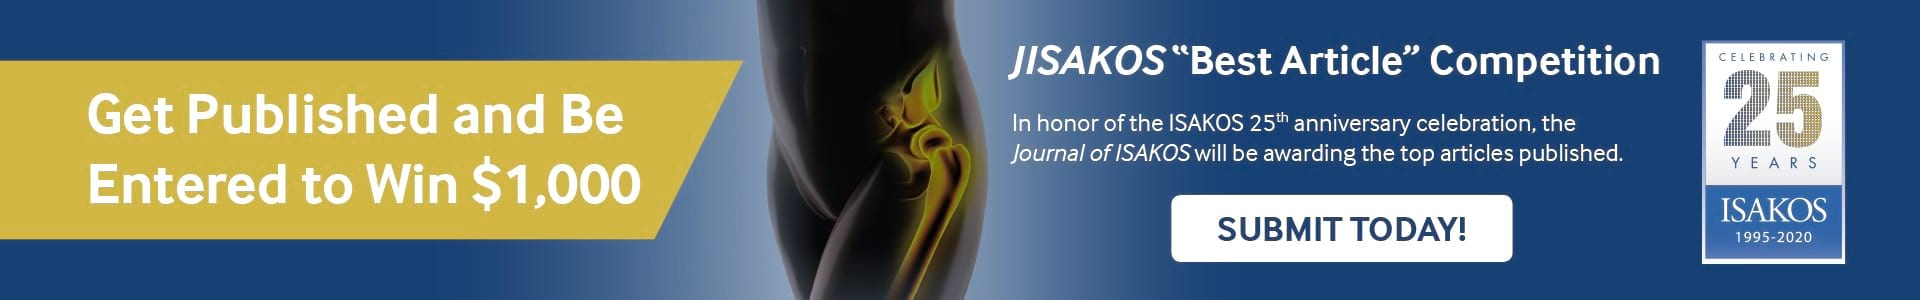 JISAKOS Article Awards